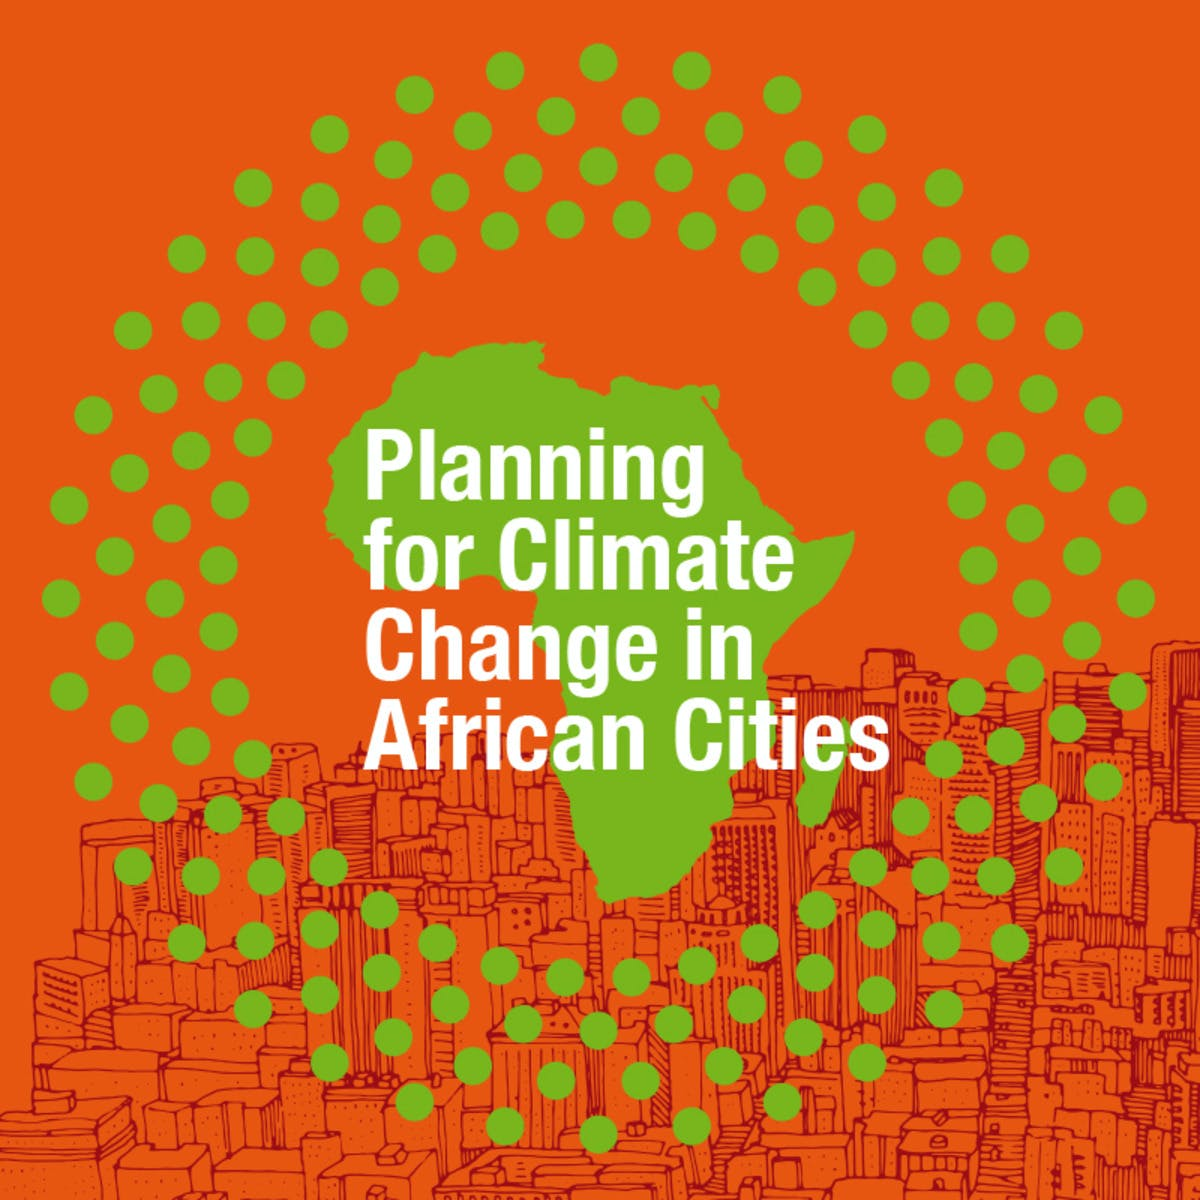 Planning for Climate Change in African Cities